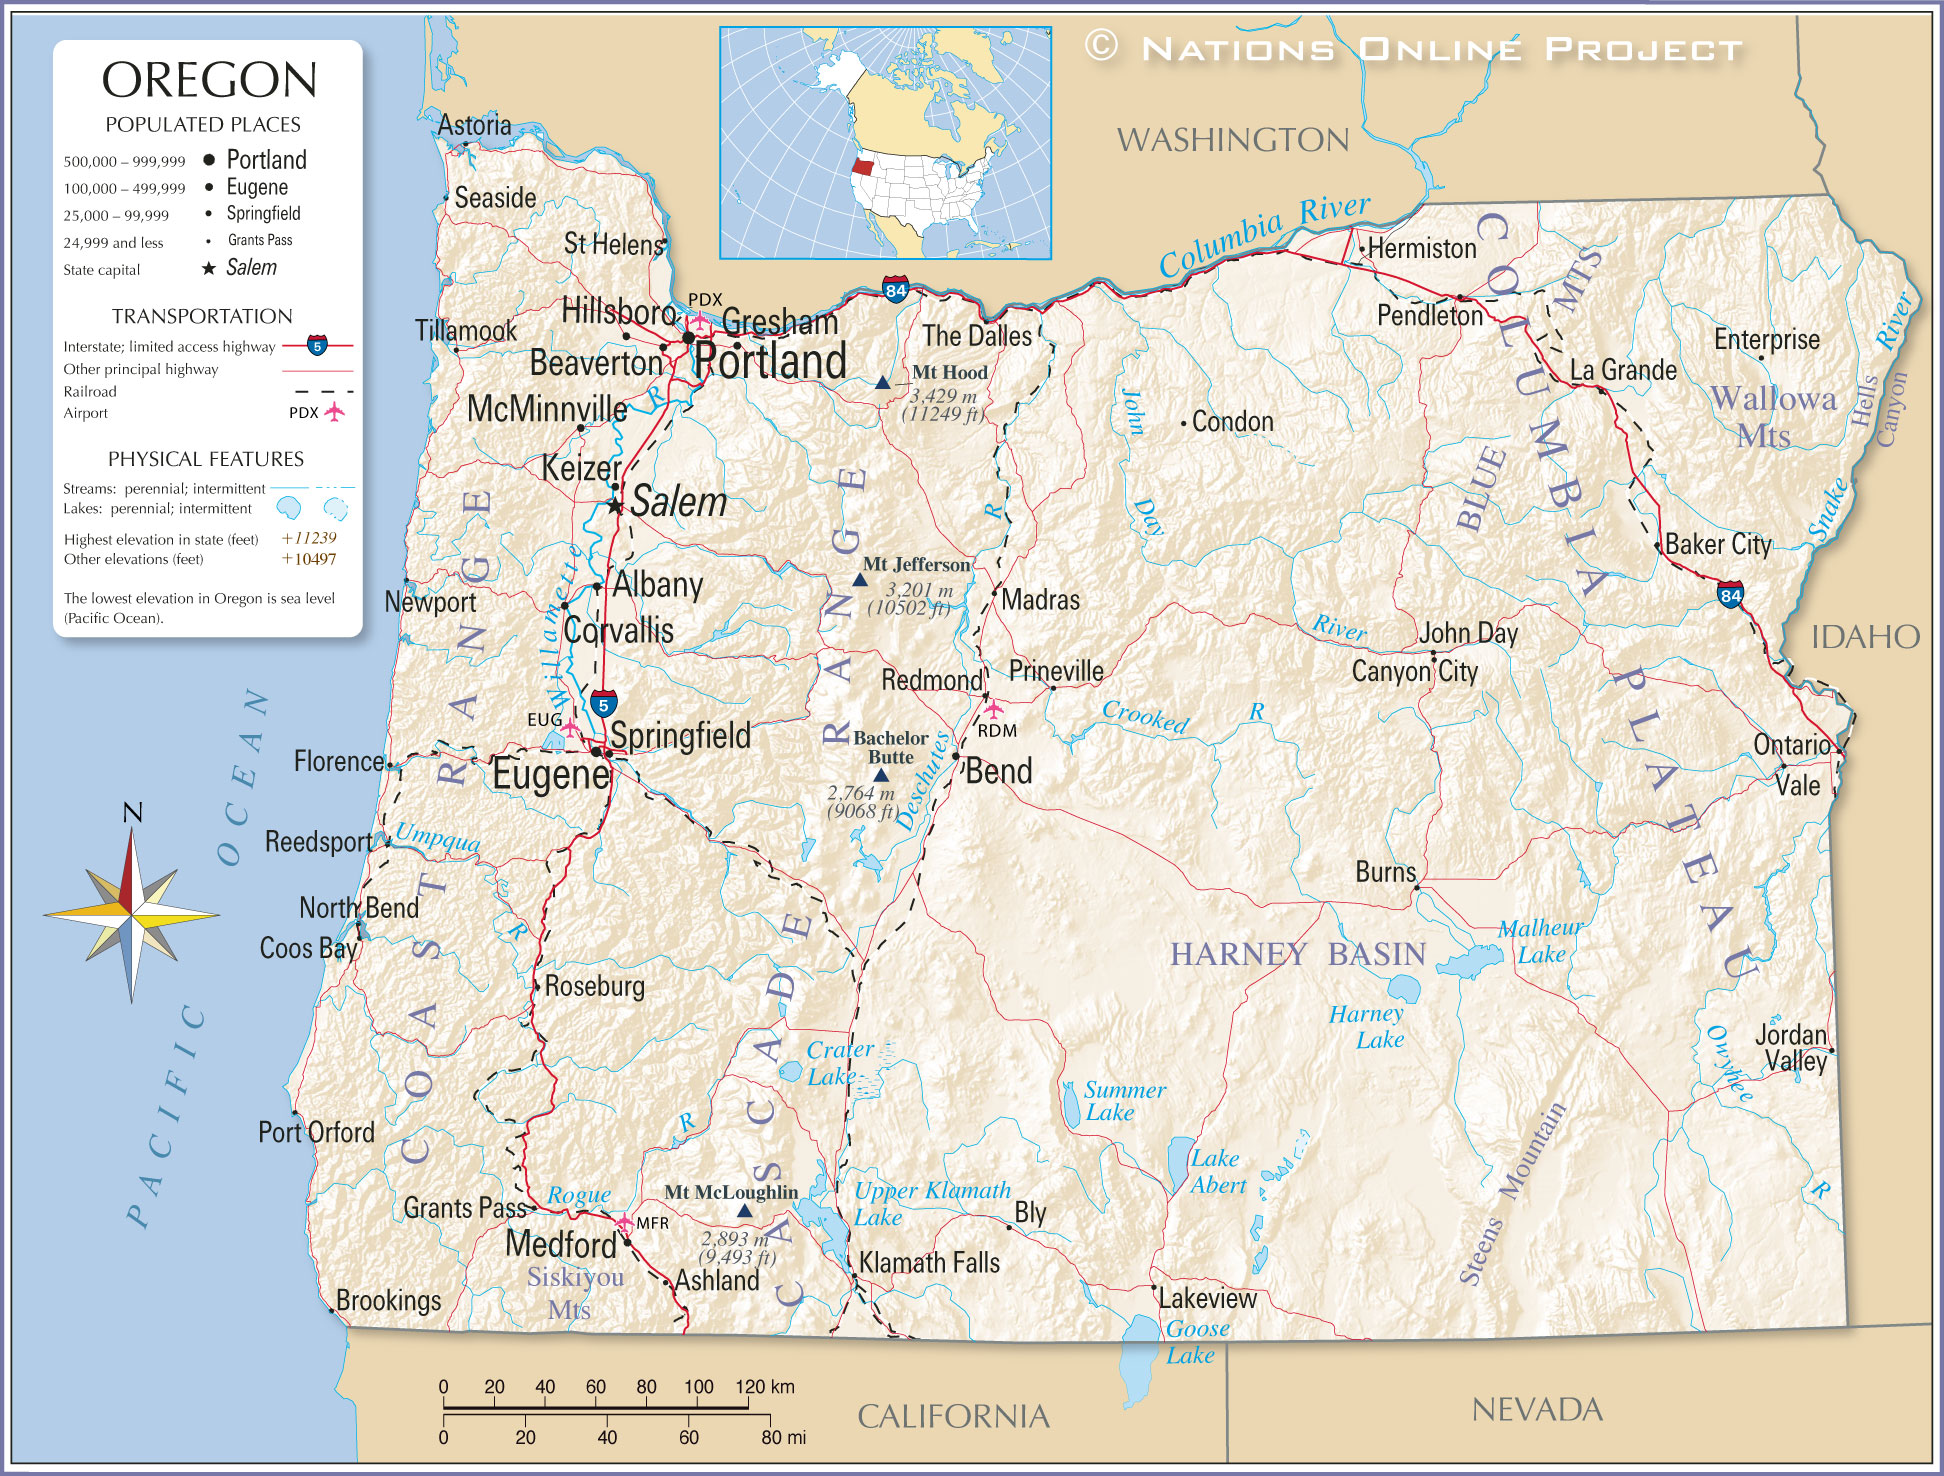 Reference Maps of Oregon, USA - Nations Online Project